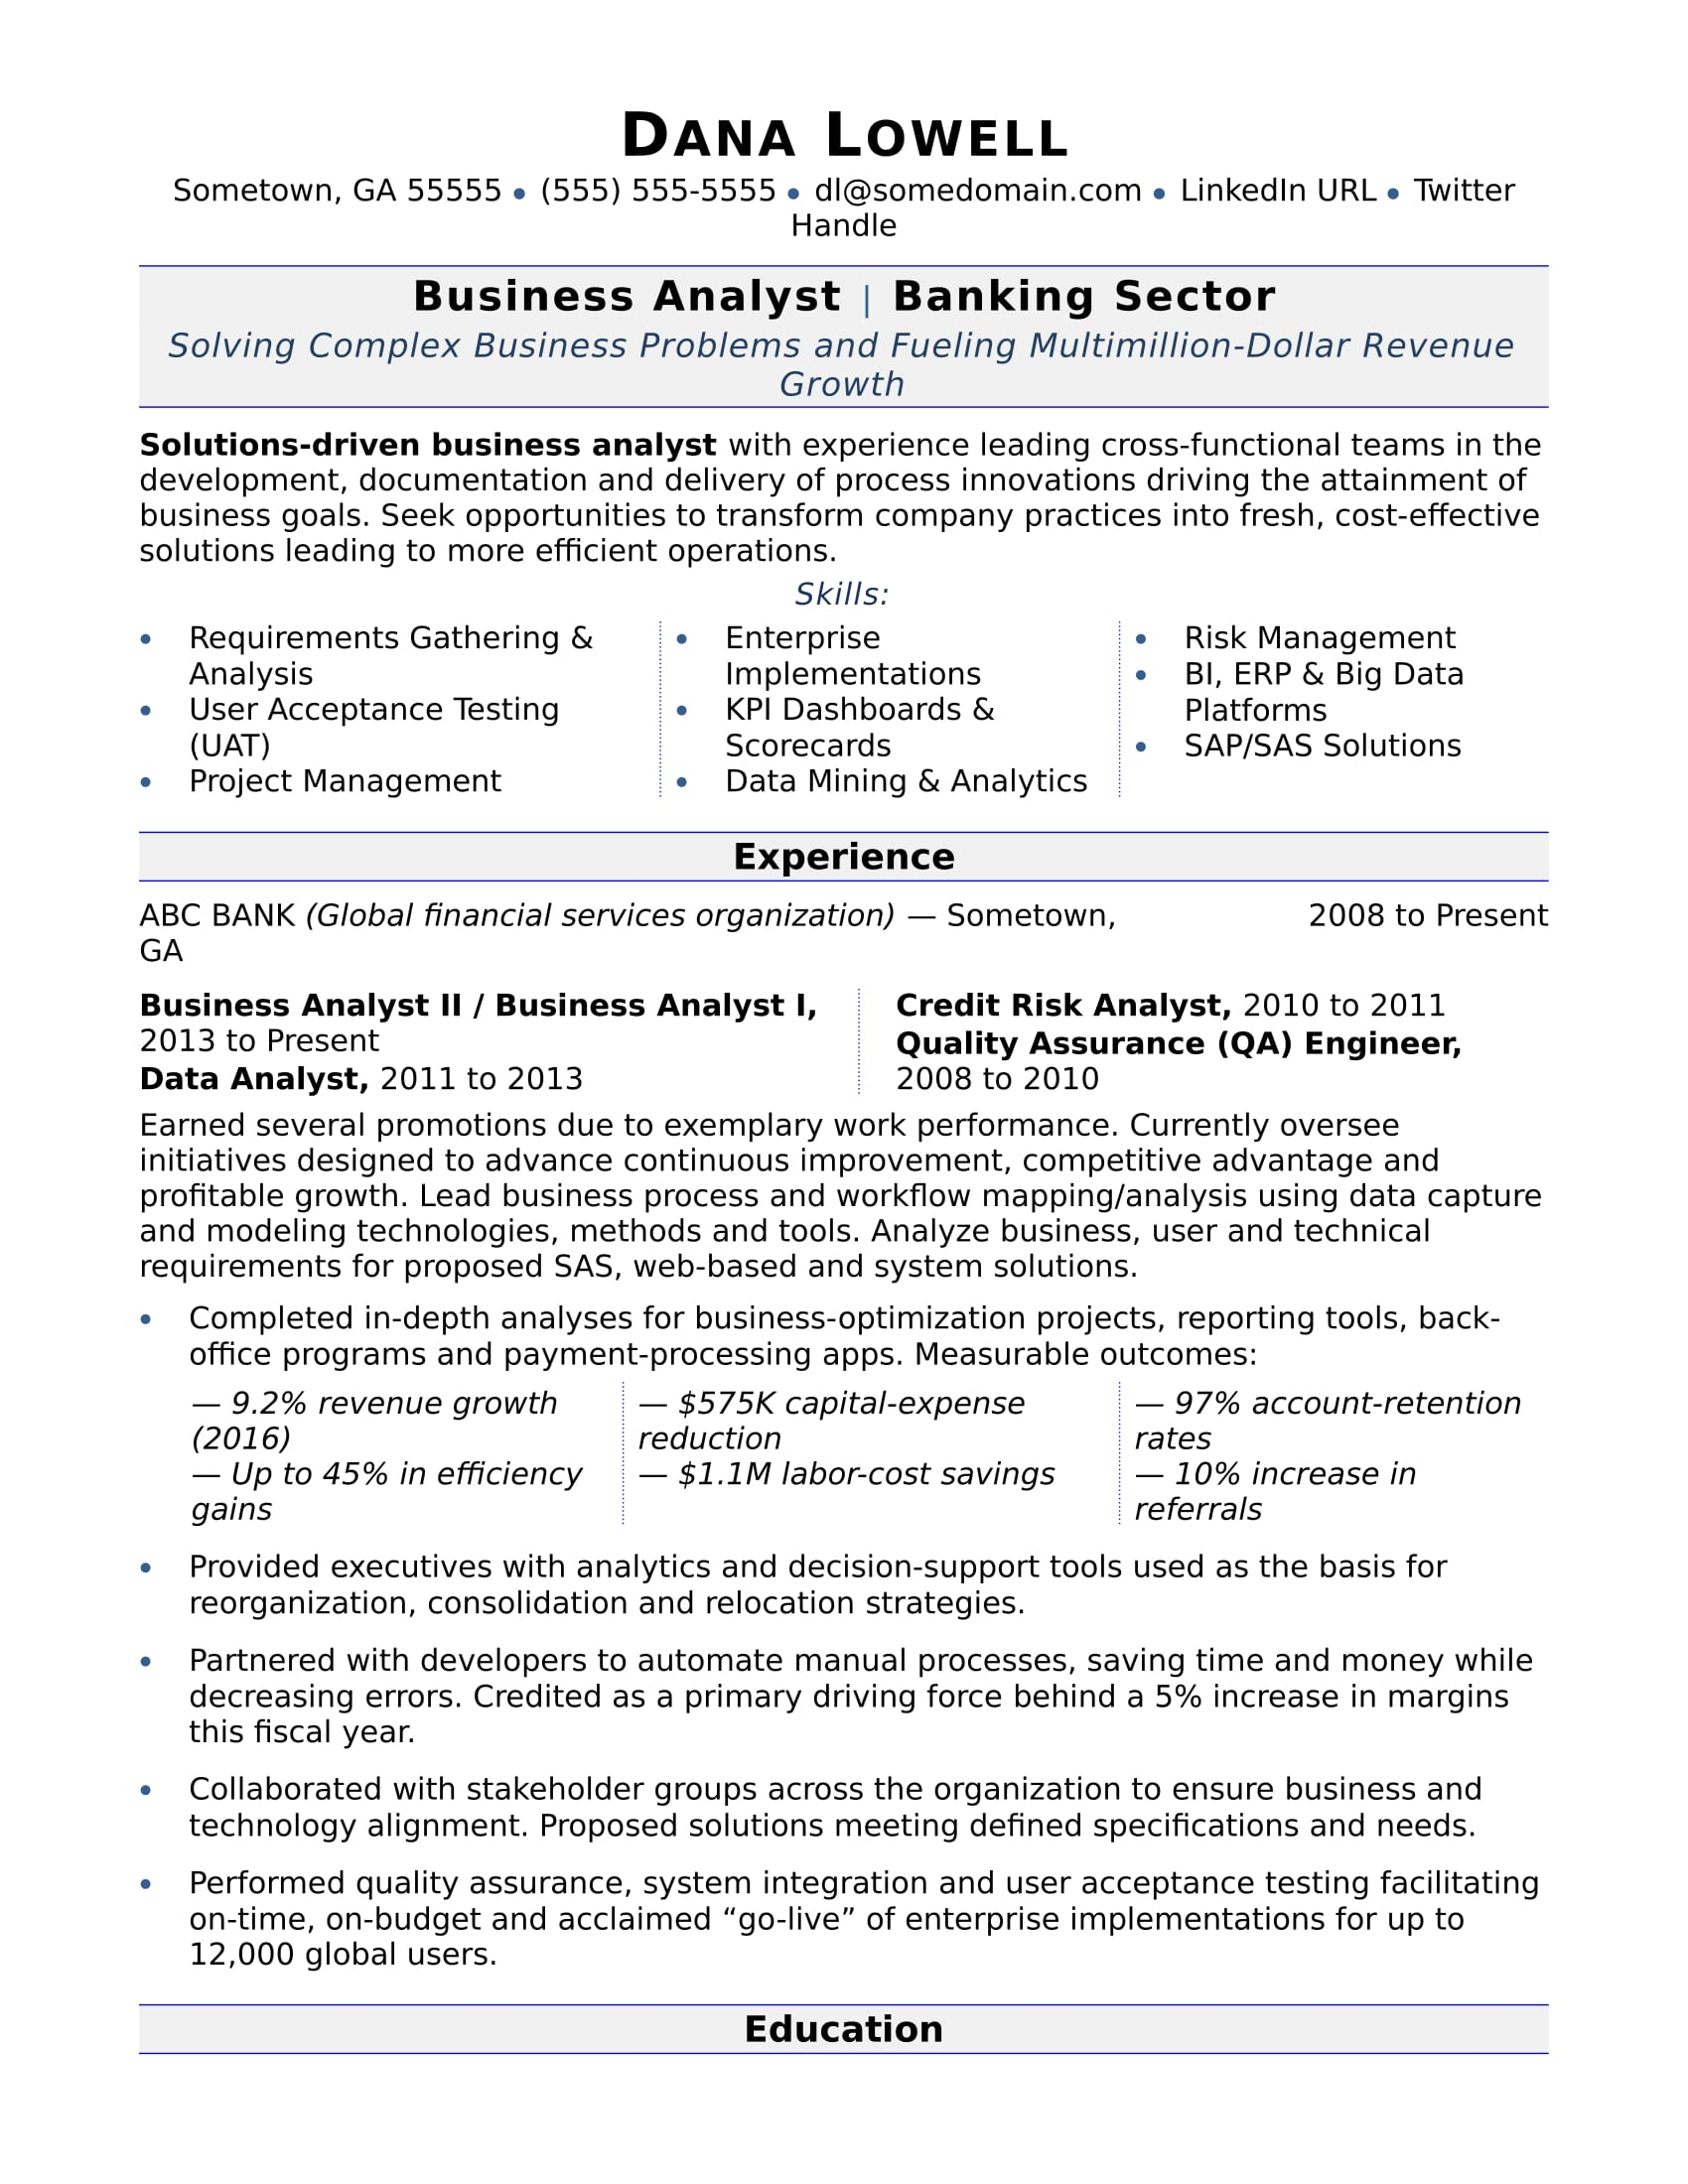 Business analyst resume sample monster business analyst resume sample friedricerecipe Images